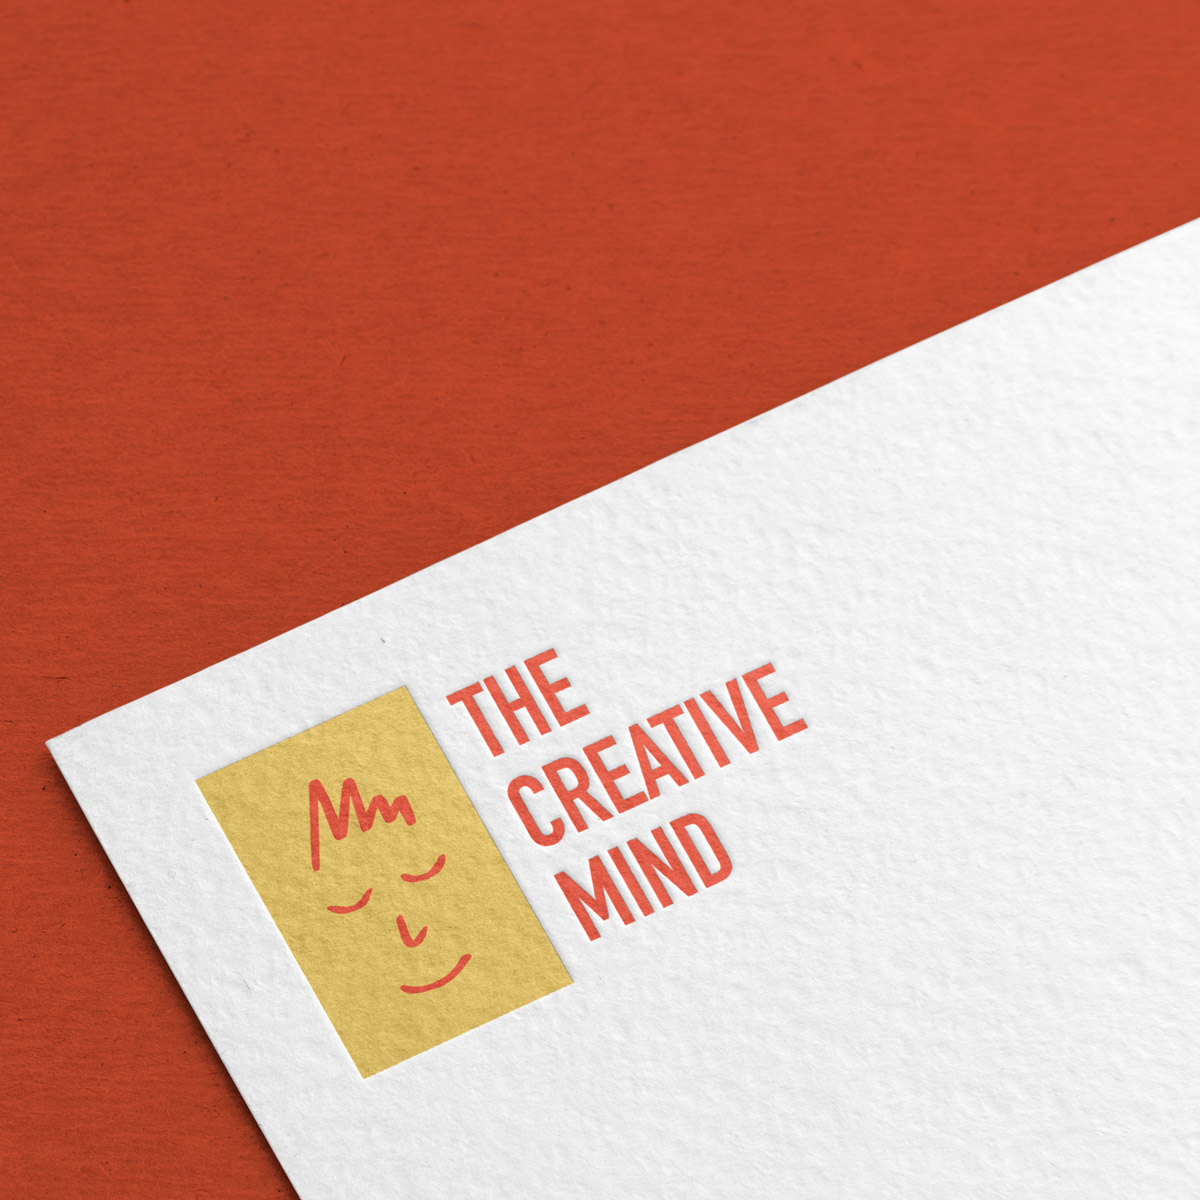 The Creative Mind Logo Closeup on Stationary